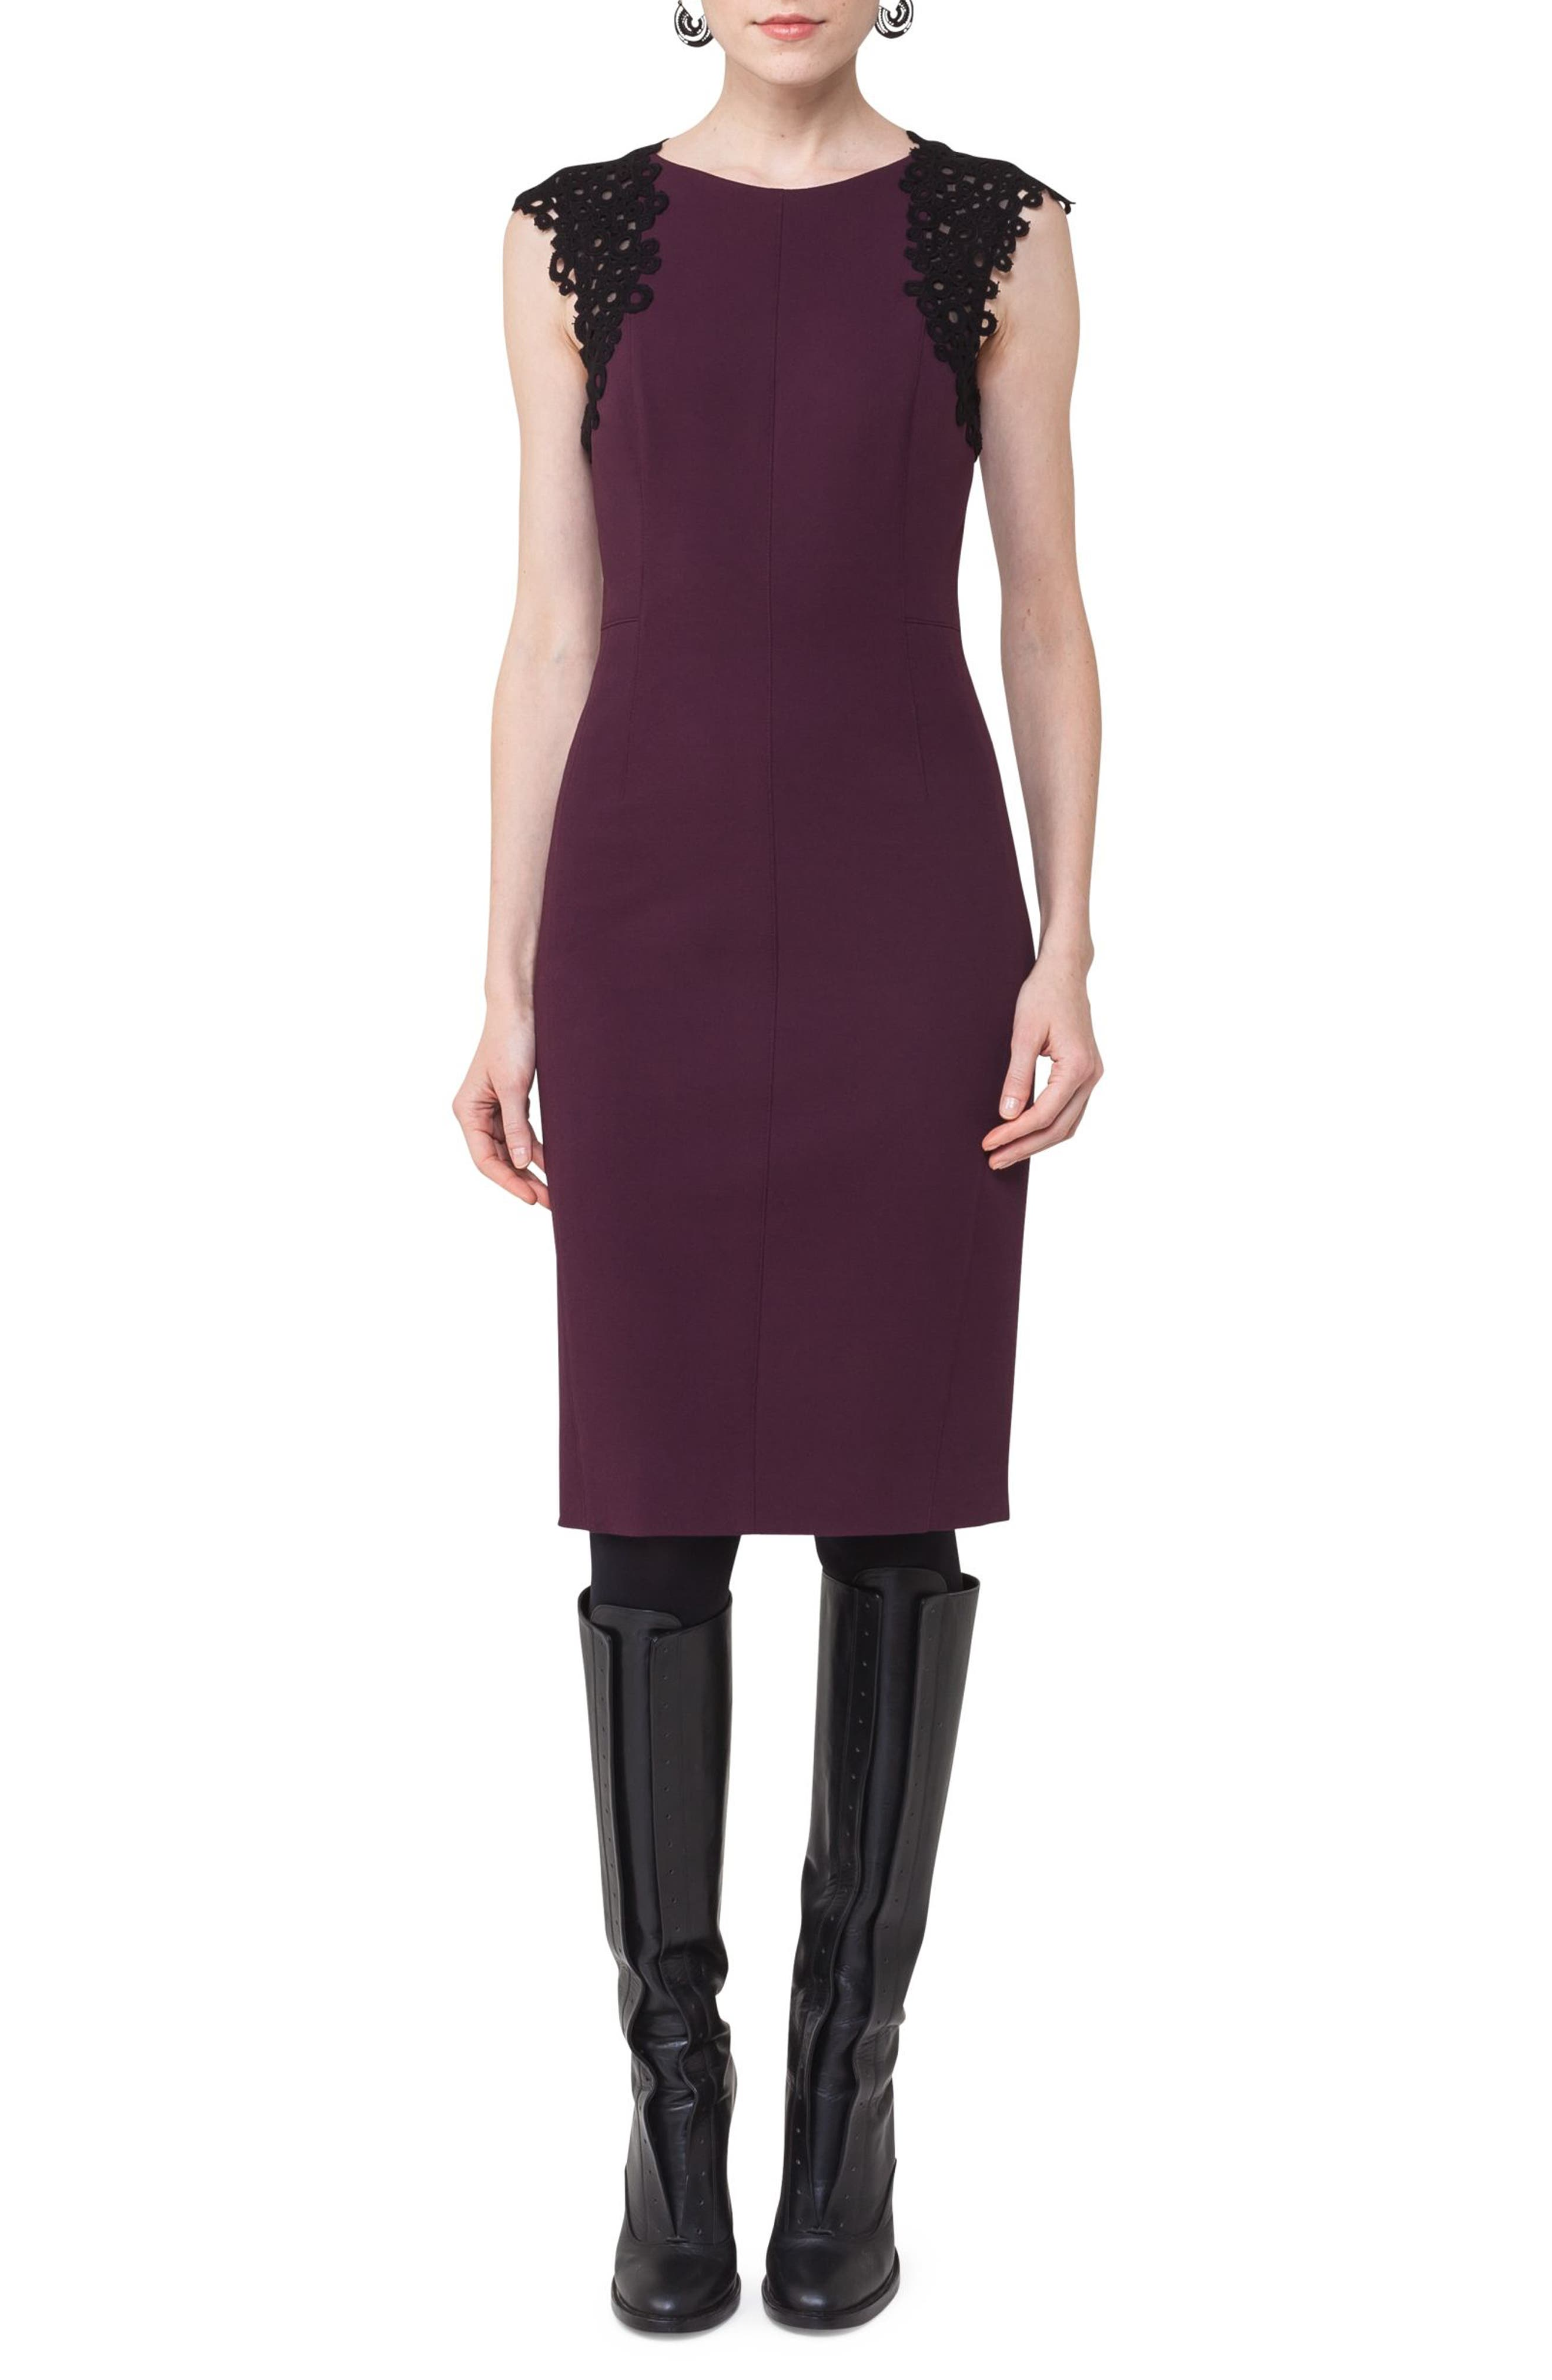 Lace Trim Sheath Dress,                             Main thumbnail 1, color,                             Wine